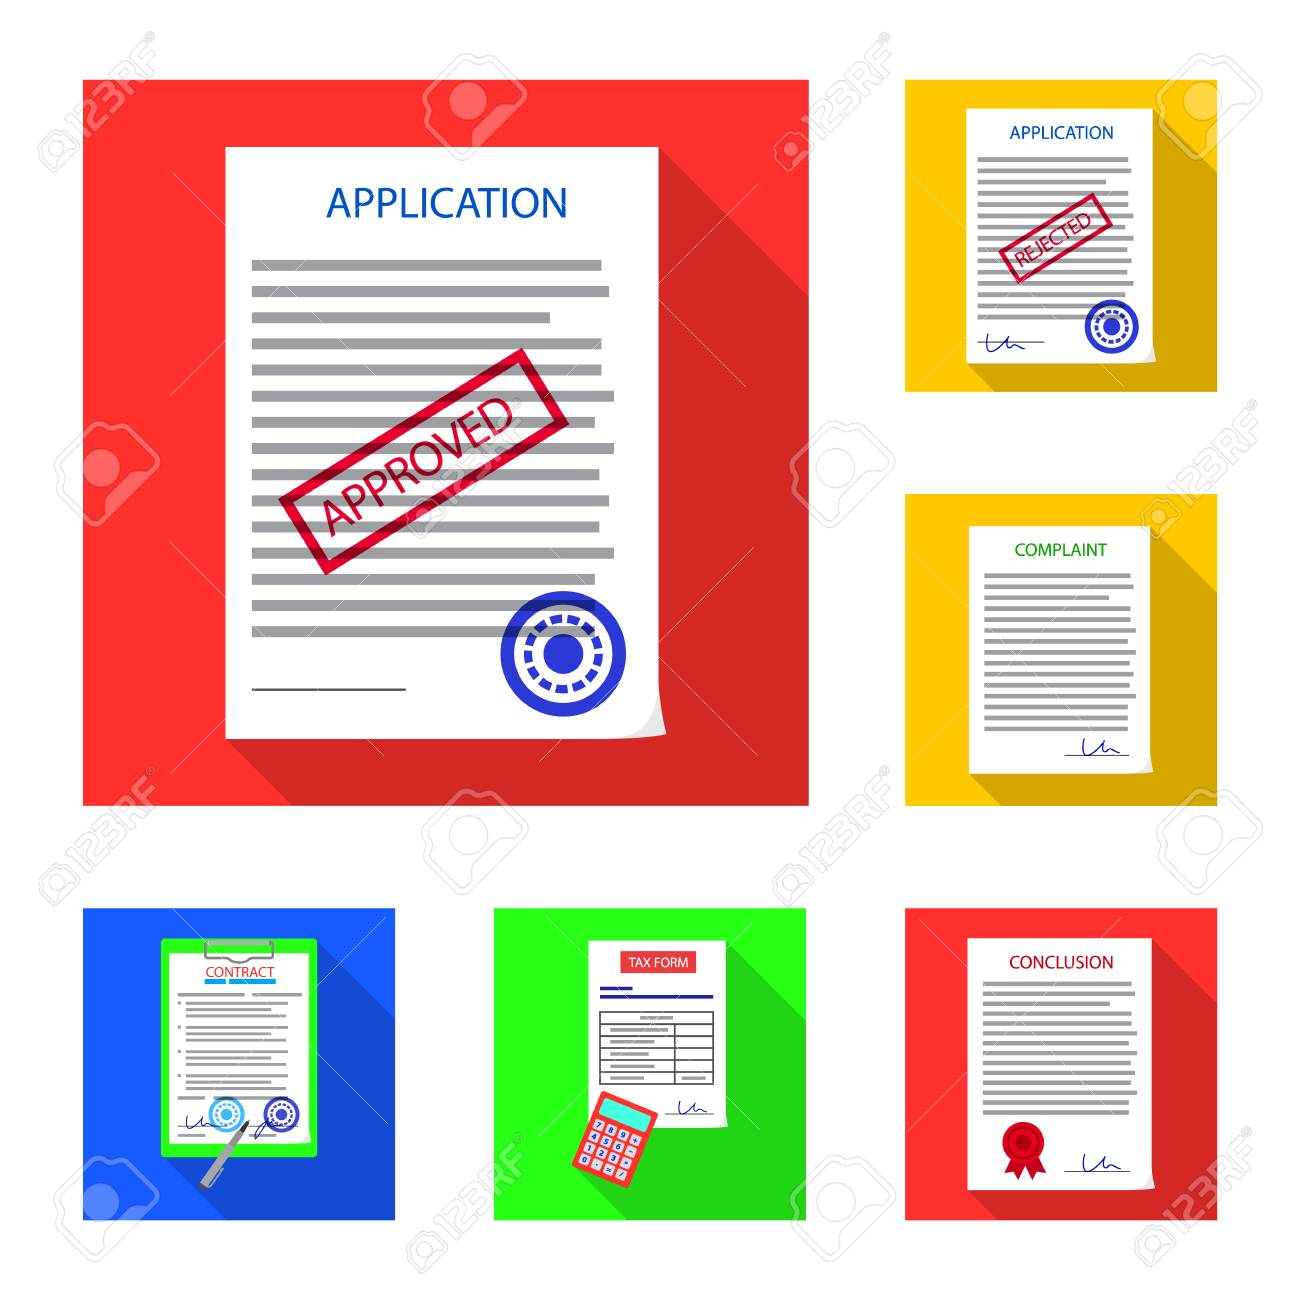 Vector illustration of form and document icon  Set of form and